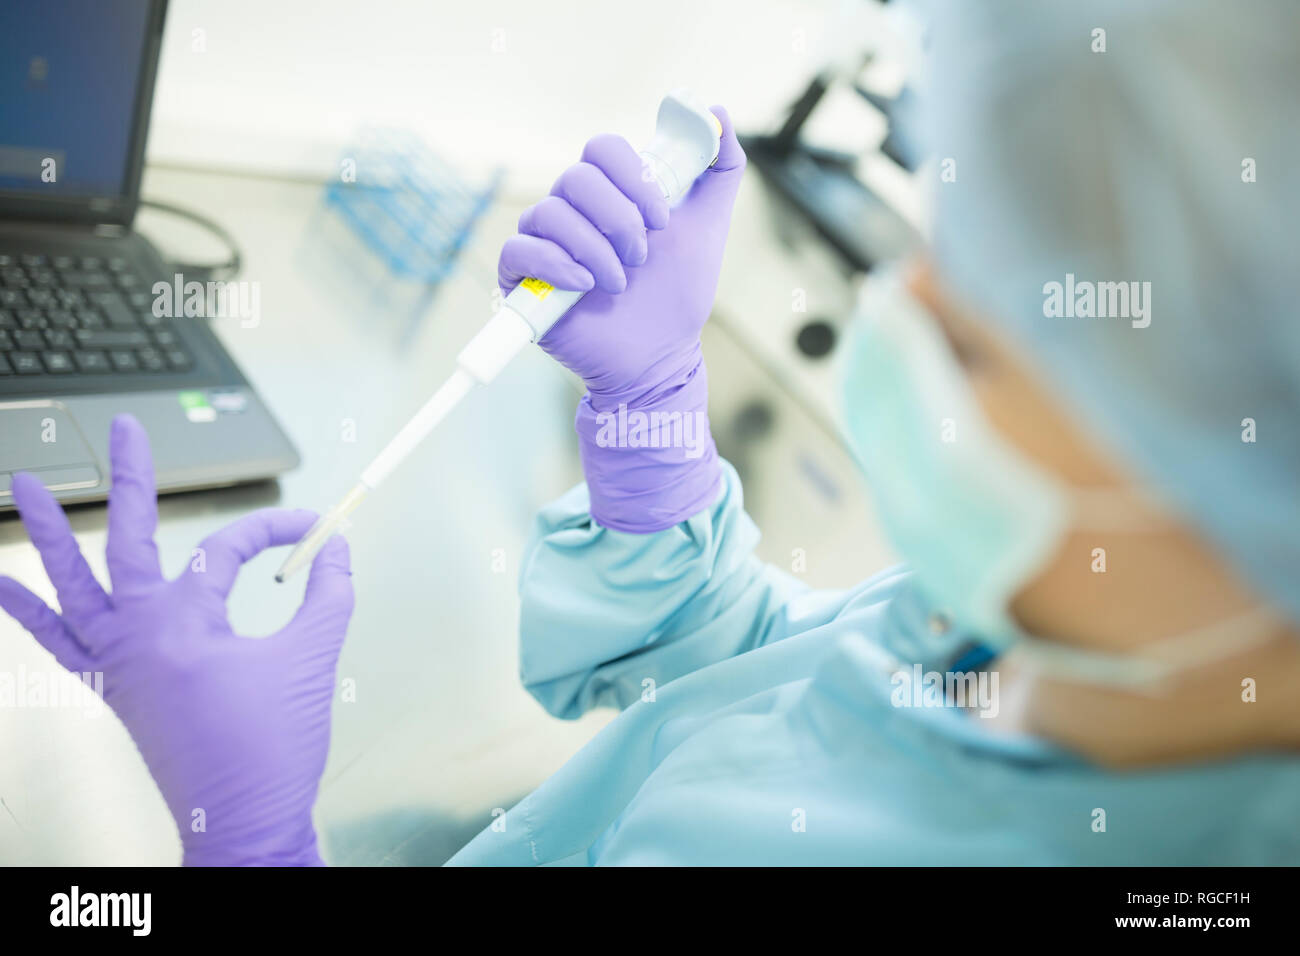 Preparation of check samples of stems in laboratory for drug production - Stock Image